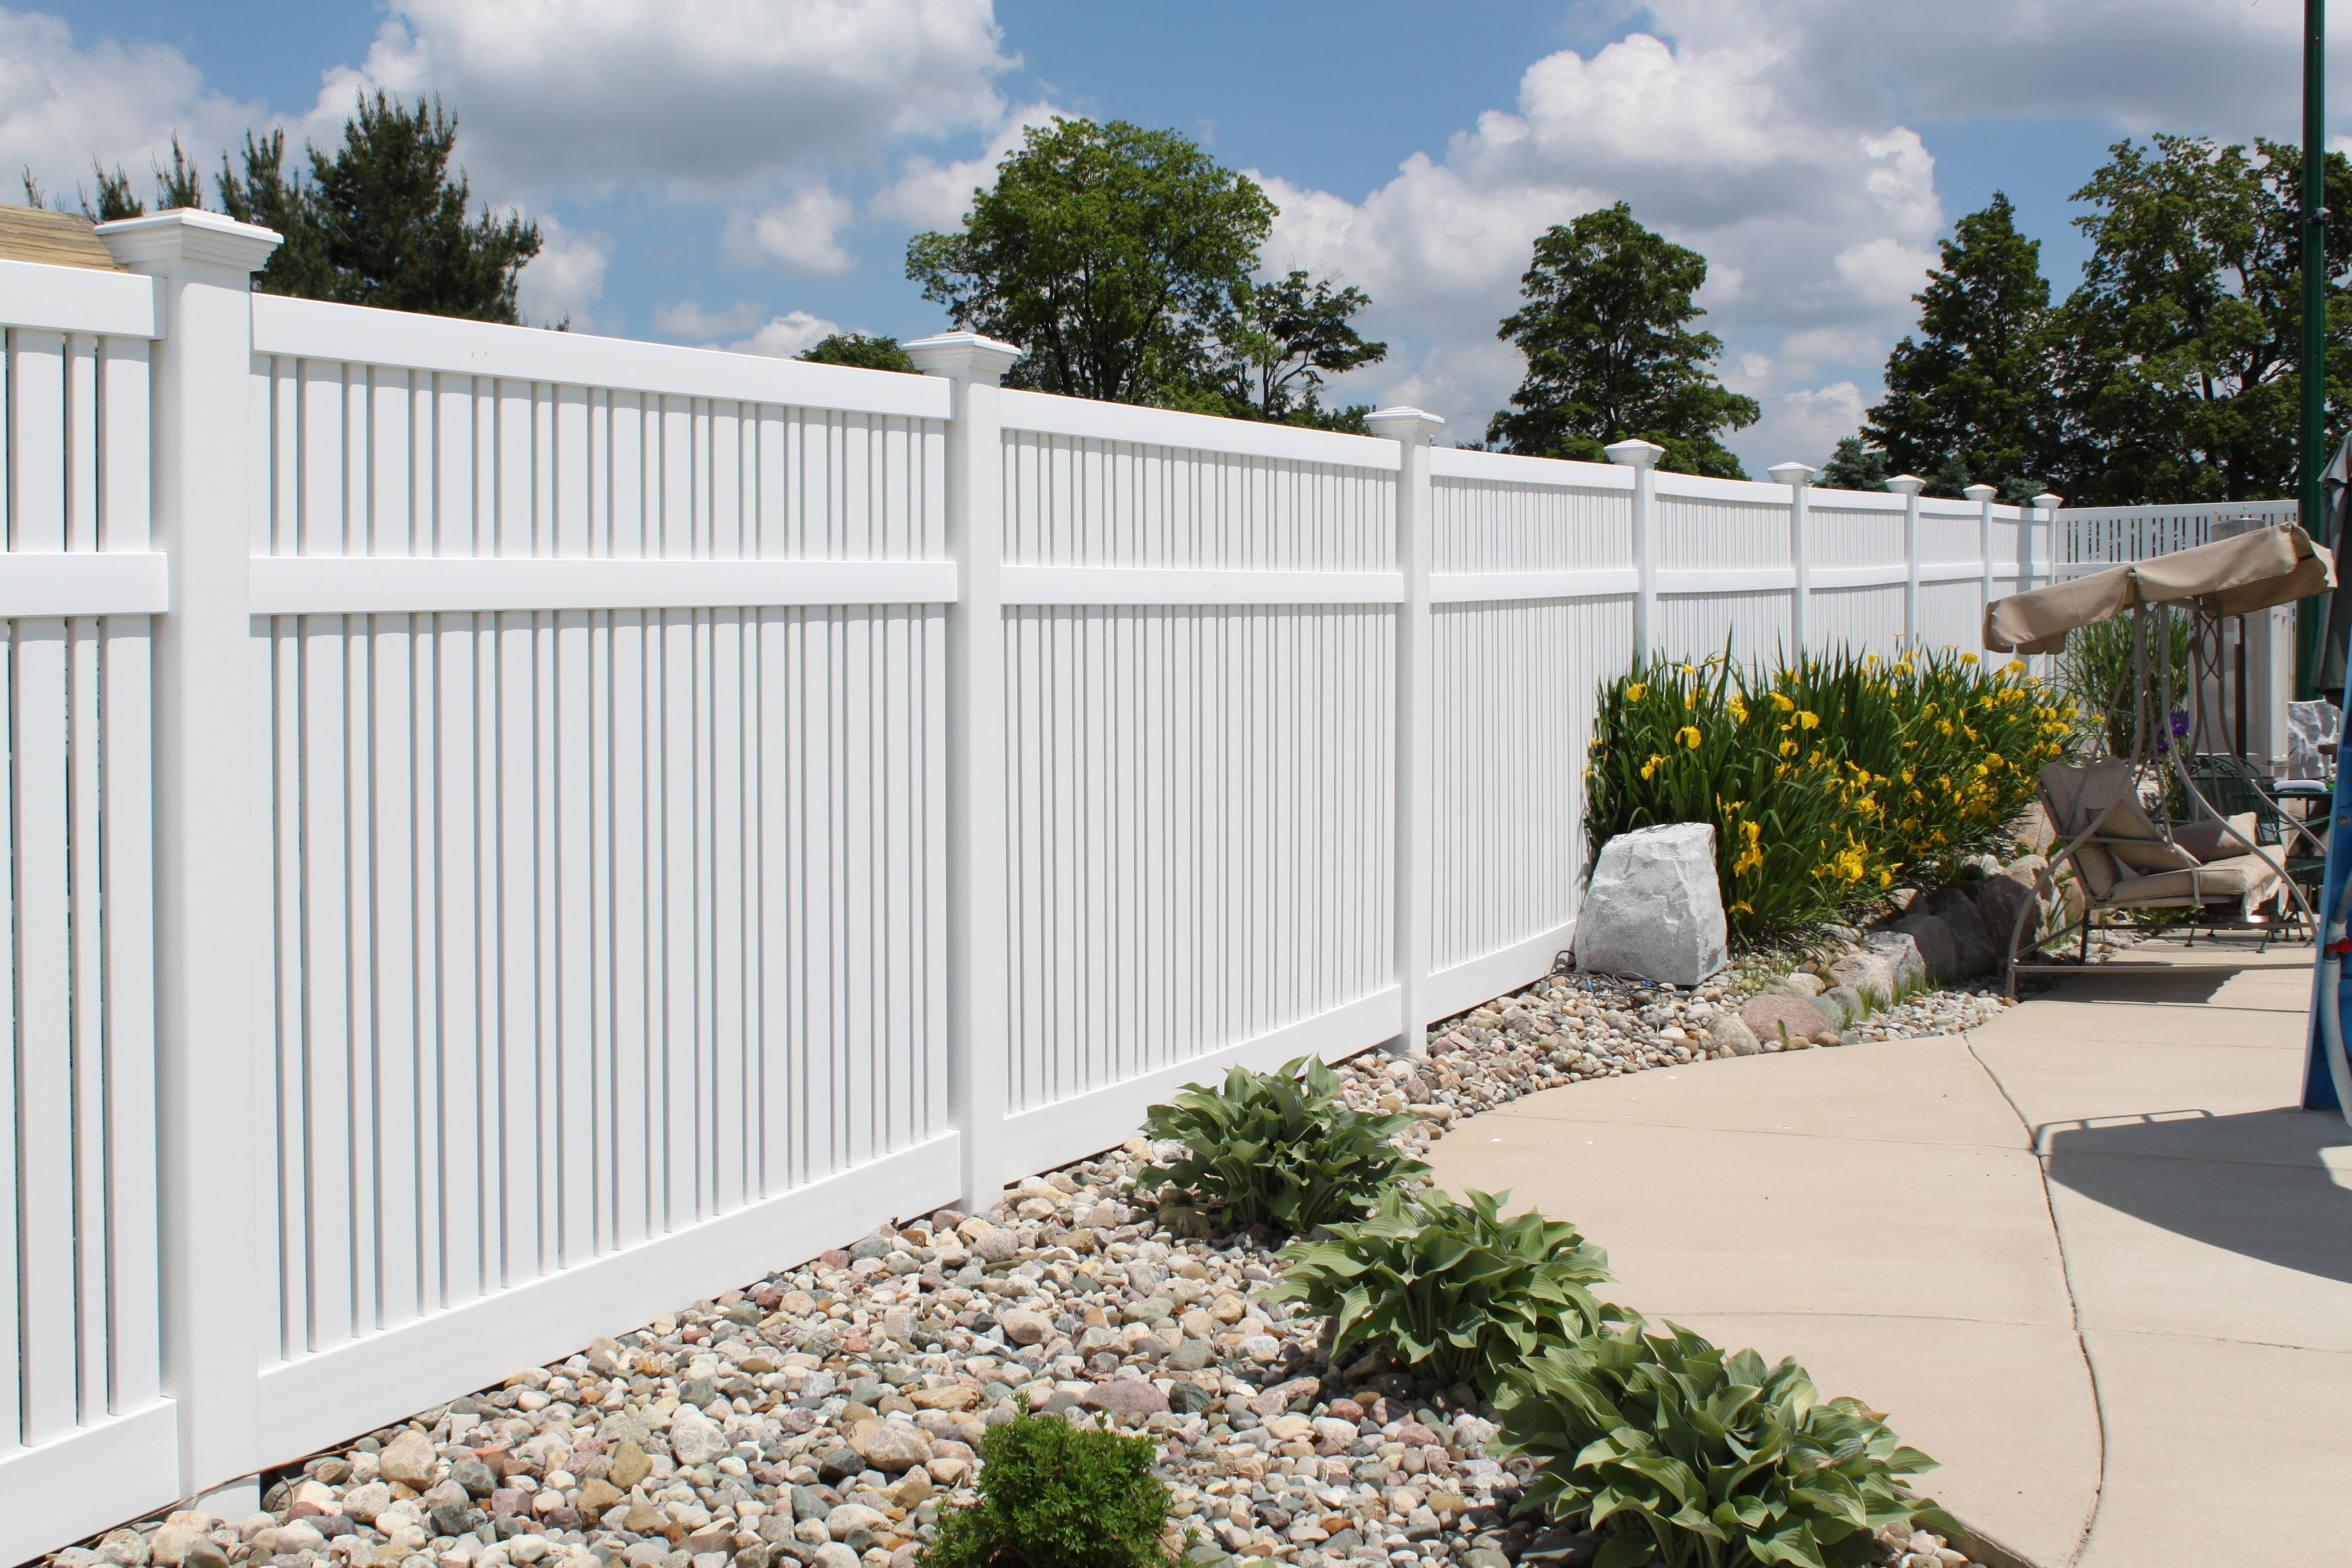 Yard & Pool Fencing Vinyl fencing for securing pools and